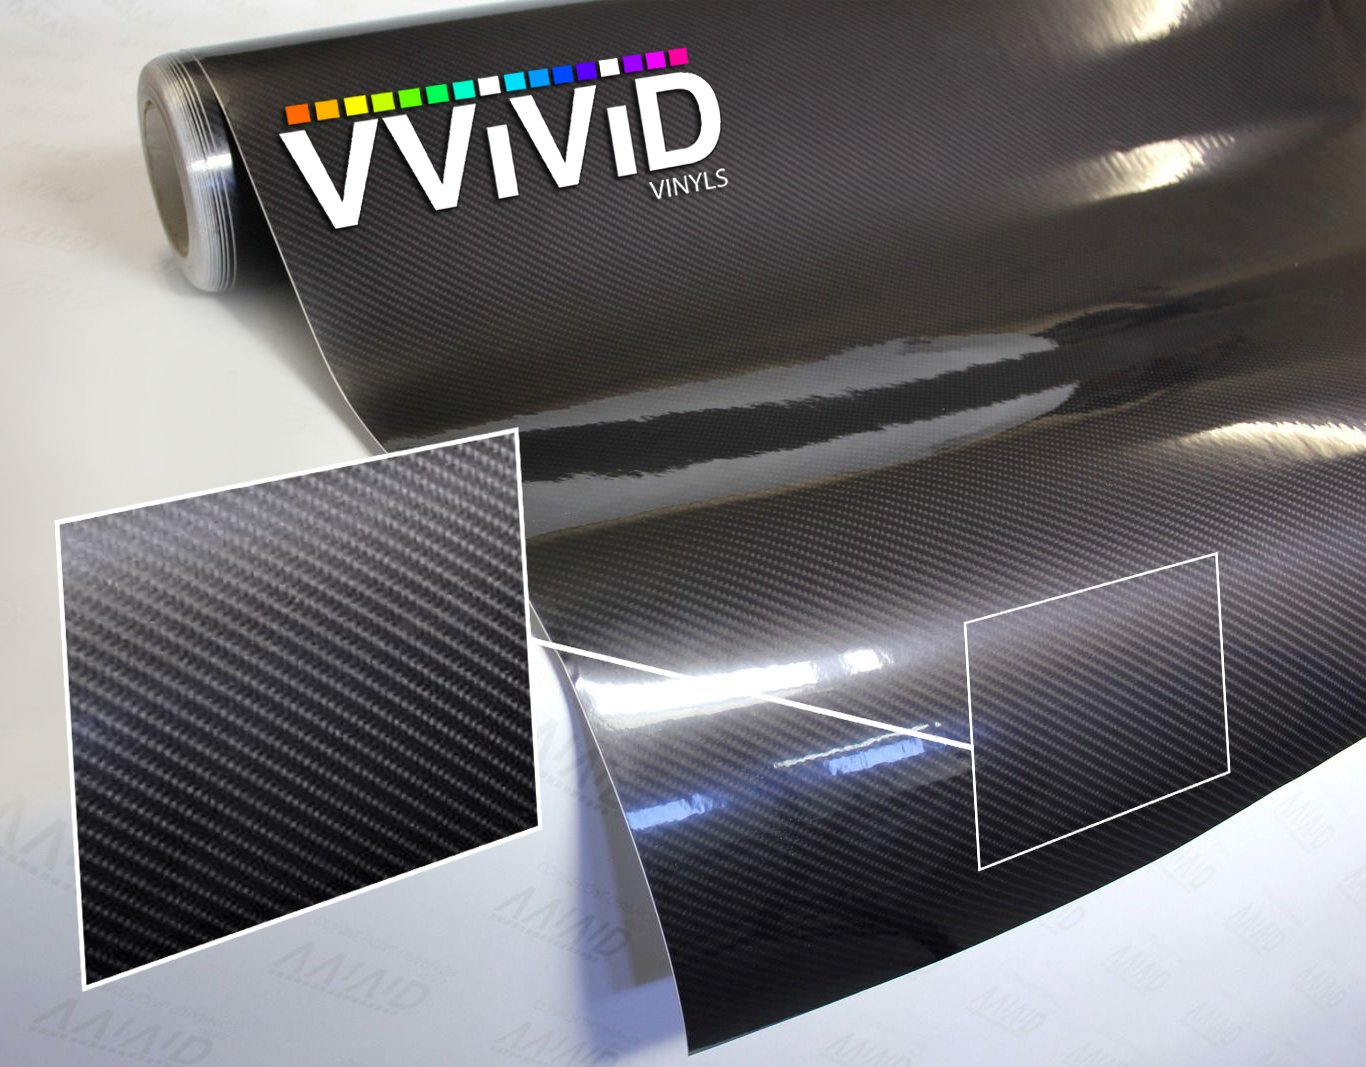 VViViD High Gloss Black Carbon Fiber Tech Art 3-Layer 3D Realistic True Carbon Fiber Look Cast Vinyl Wrap (25ft x 5ft) by VViViD (Image #1)